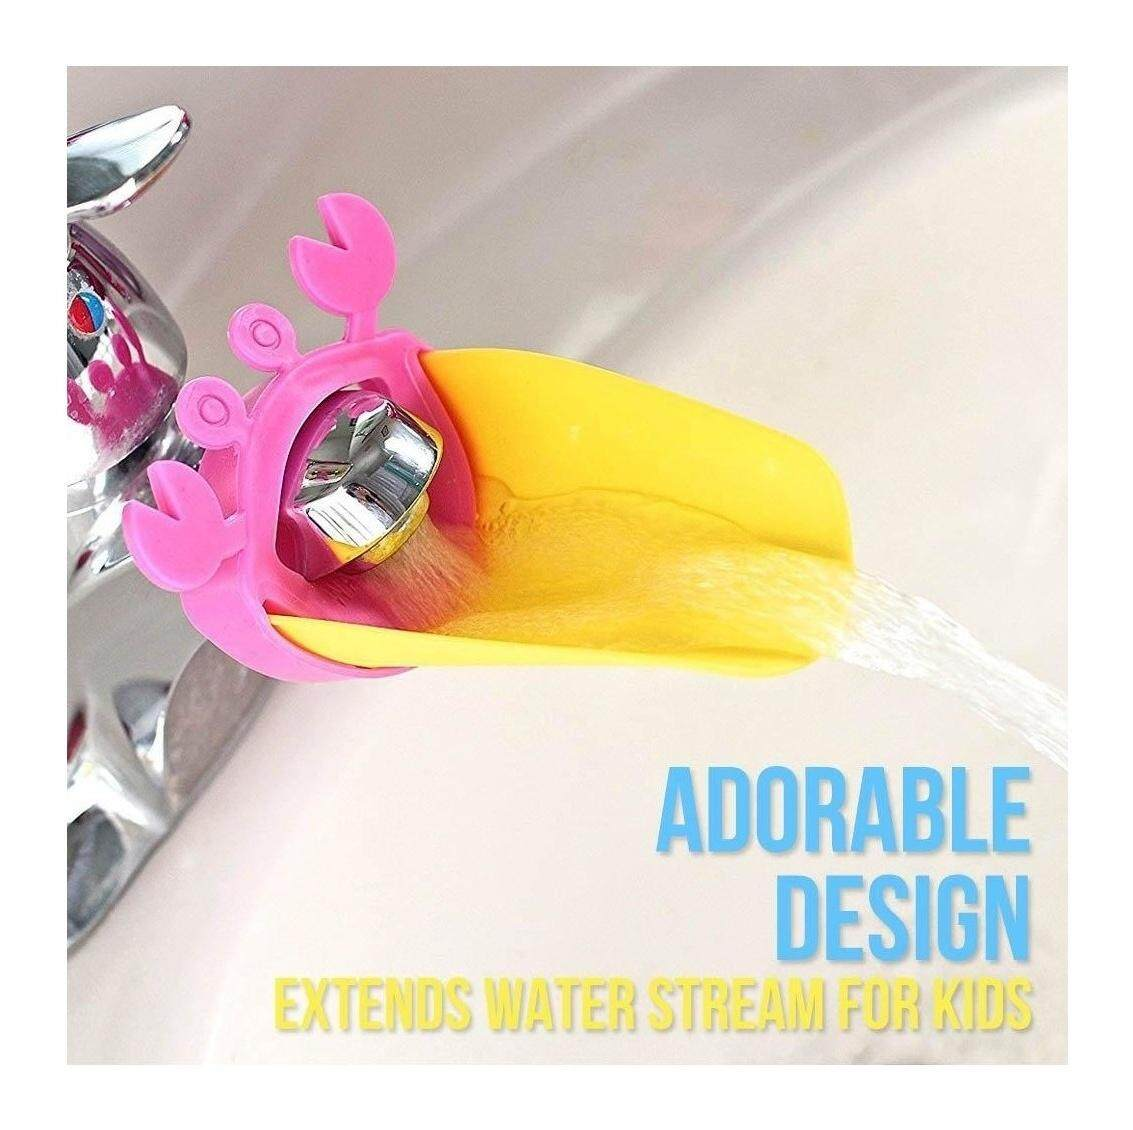 products faucets faucet do handle home extender it extension cold hot impressions best super zoom